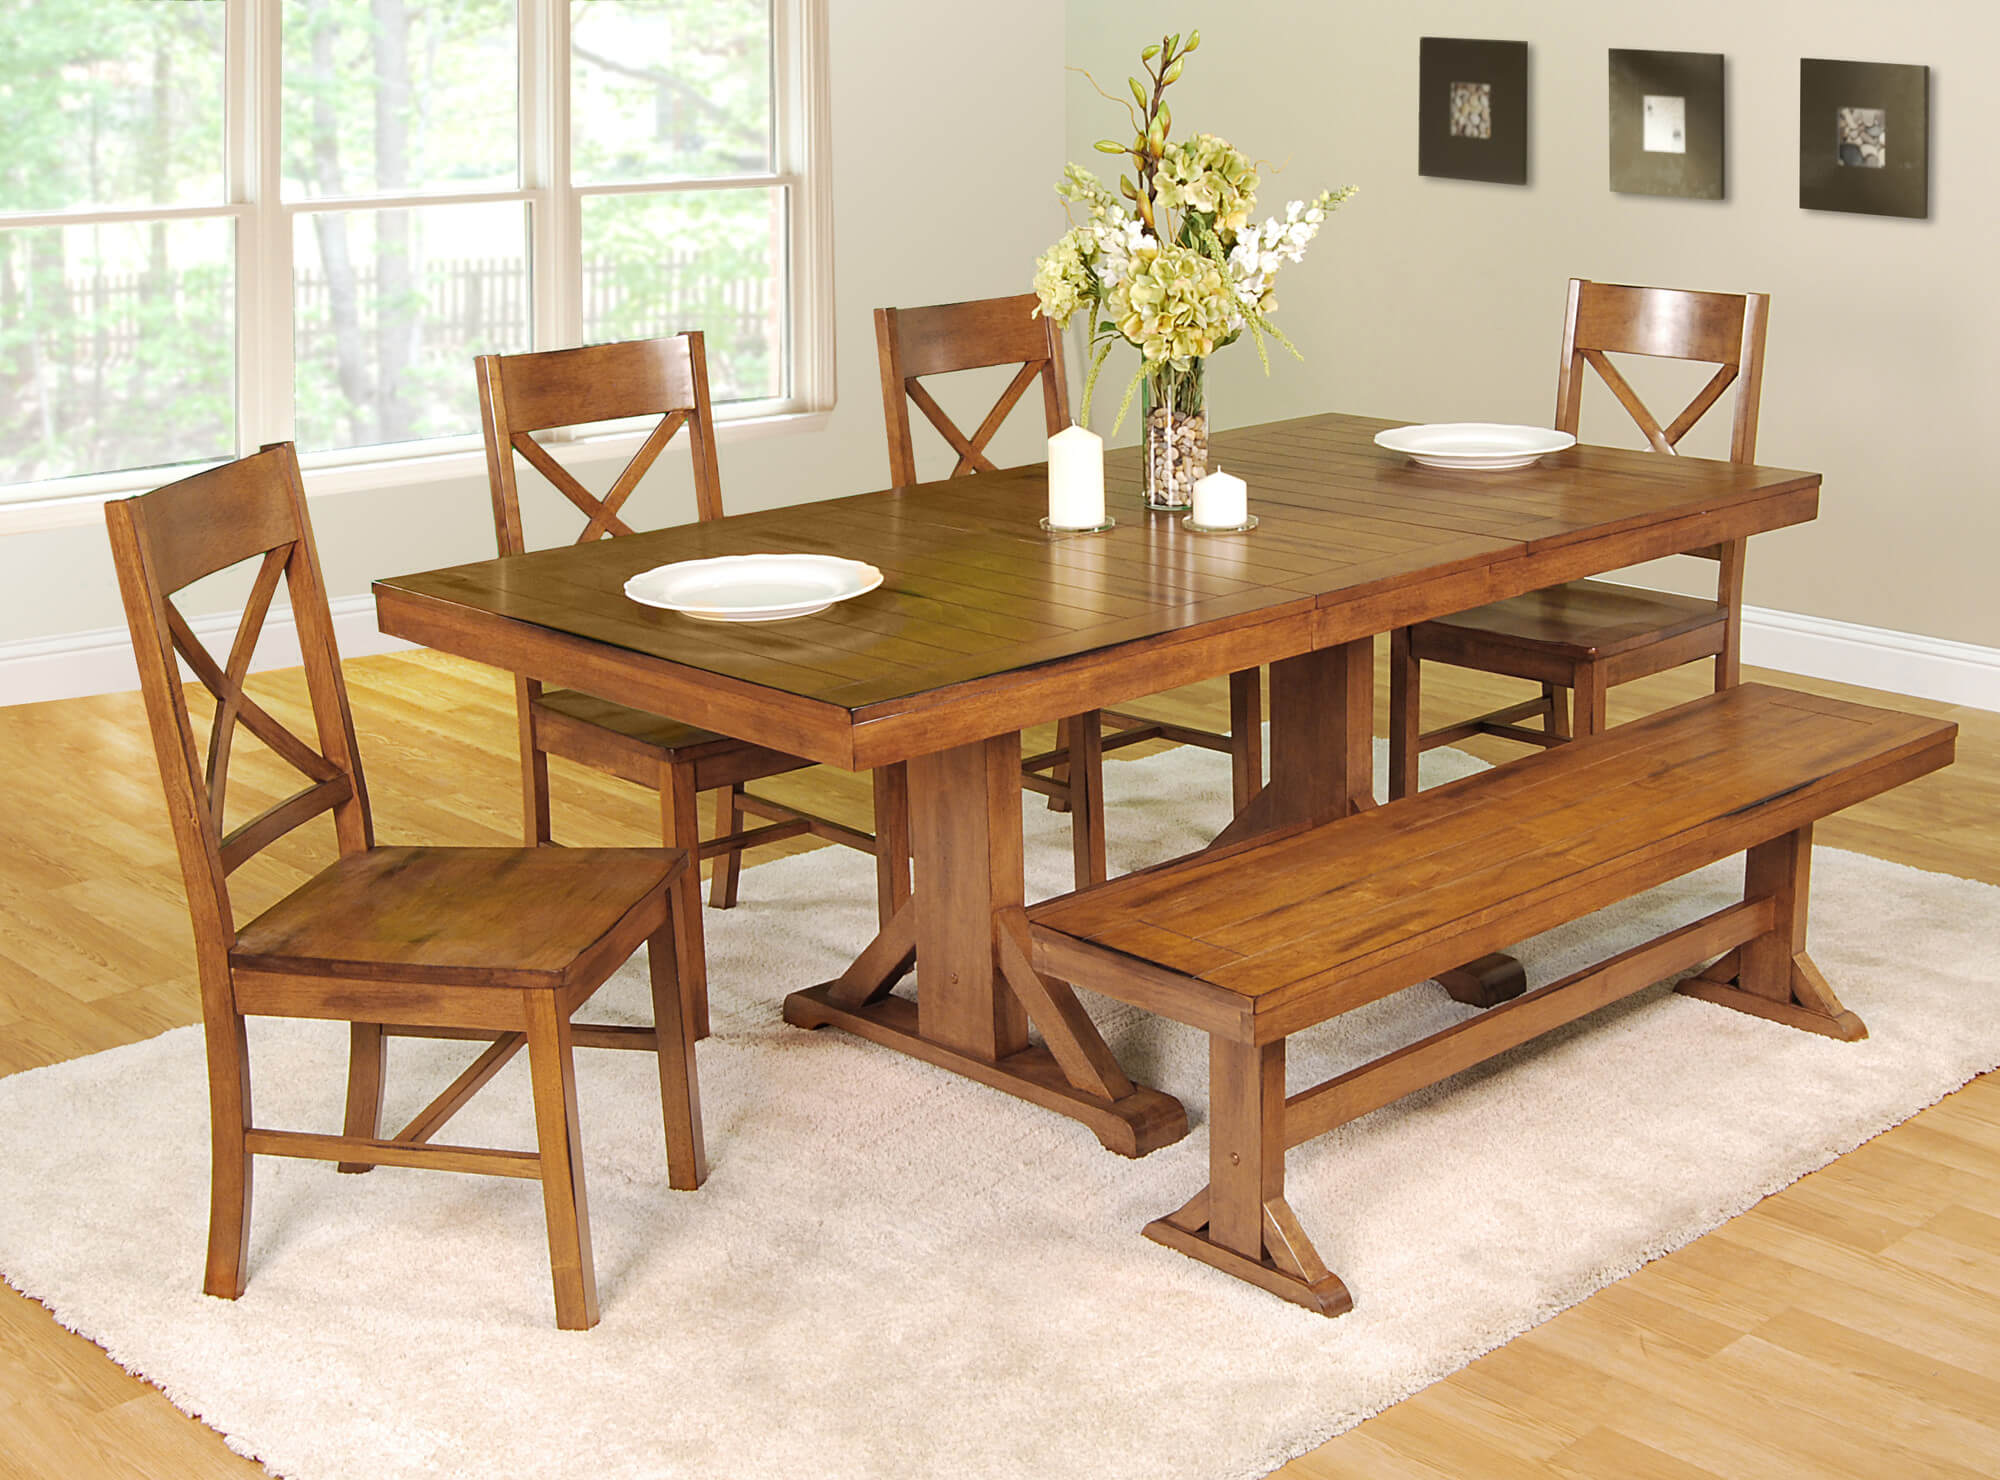 26 big small dining room sets with bench seating for Small dining set with bench